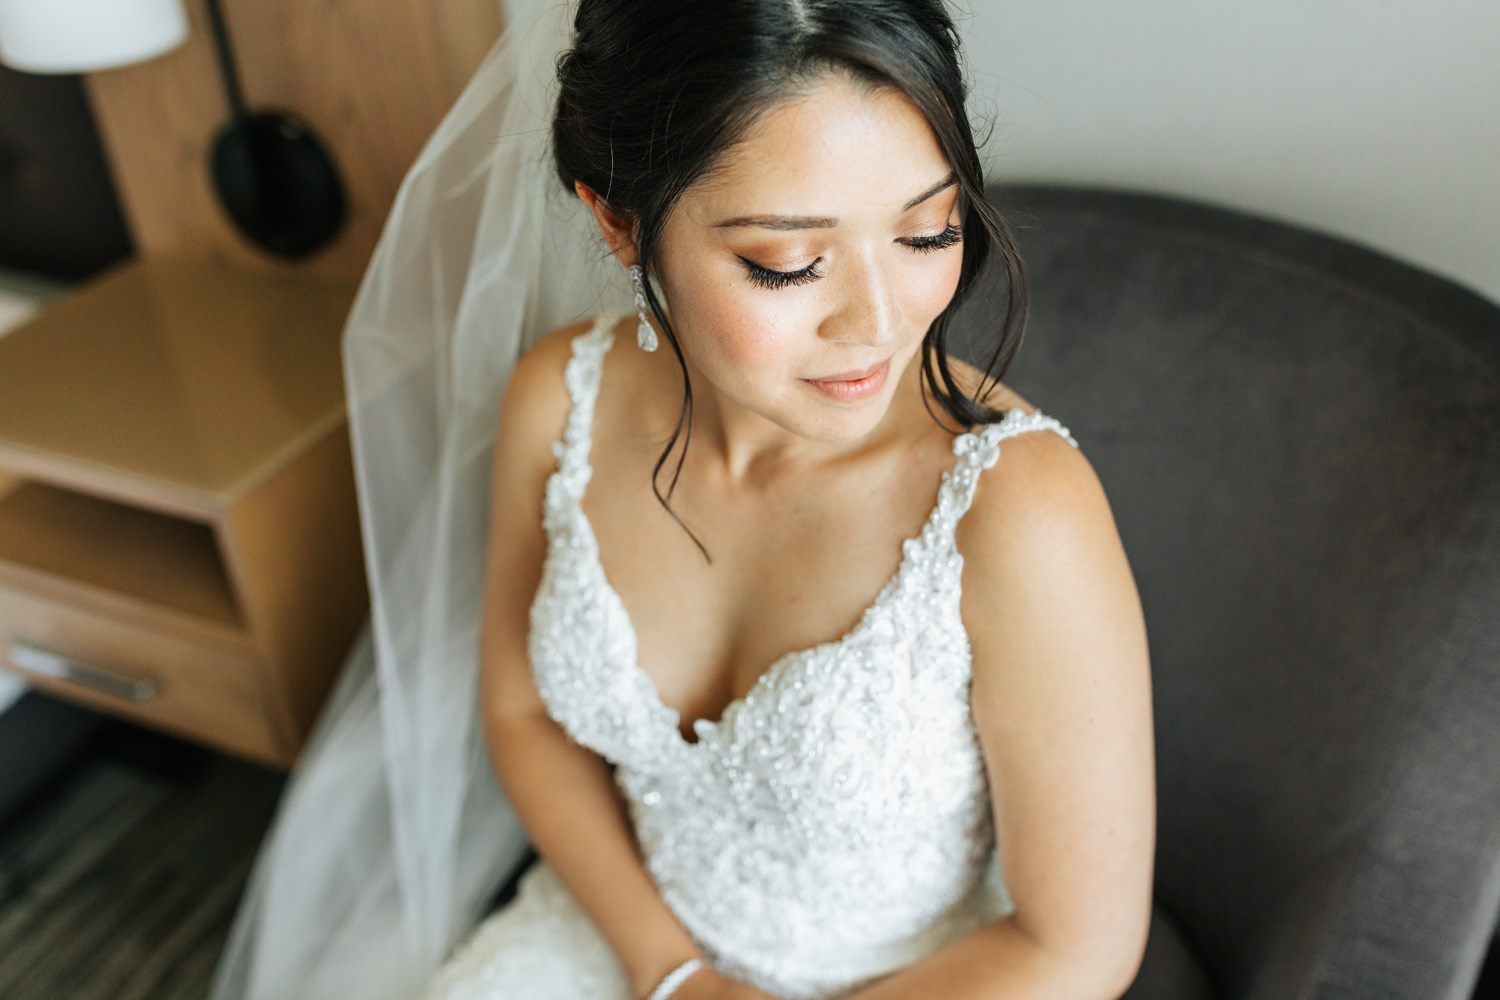 Bridal Makeup and Hair - Stunning Bridal Photos - https://brittneyhannonphotography.com